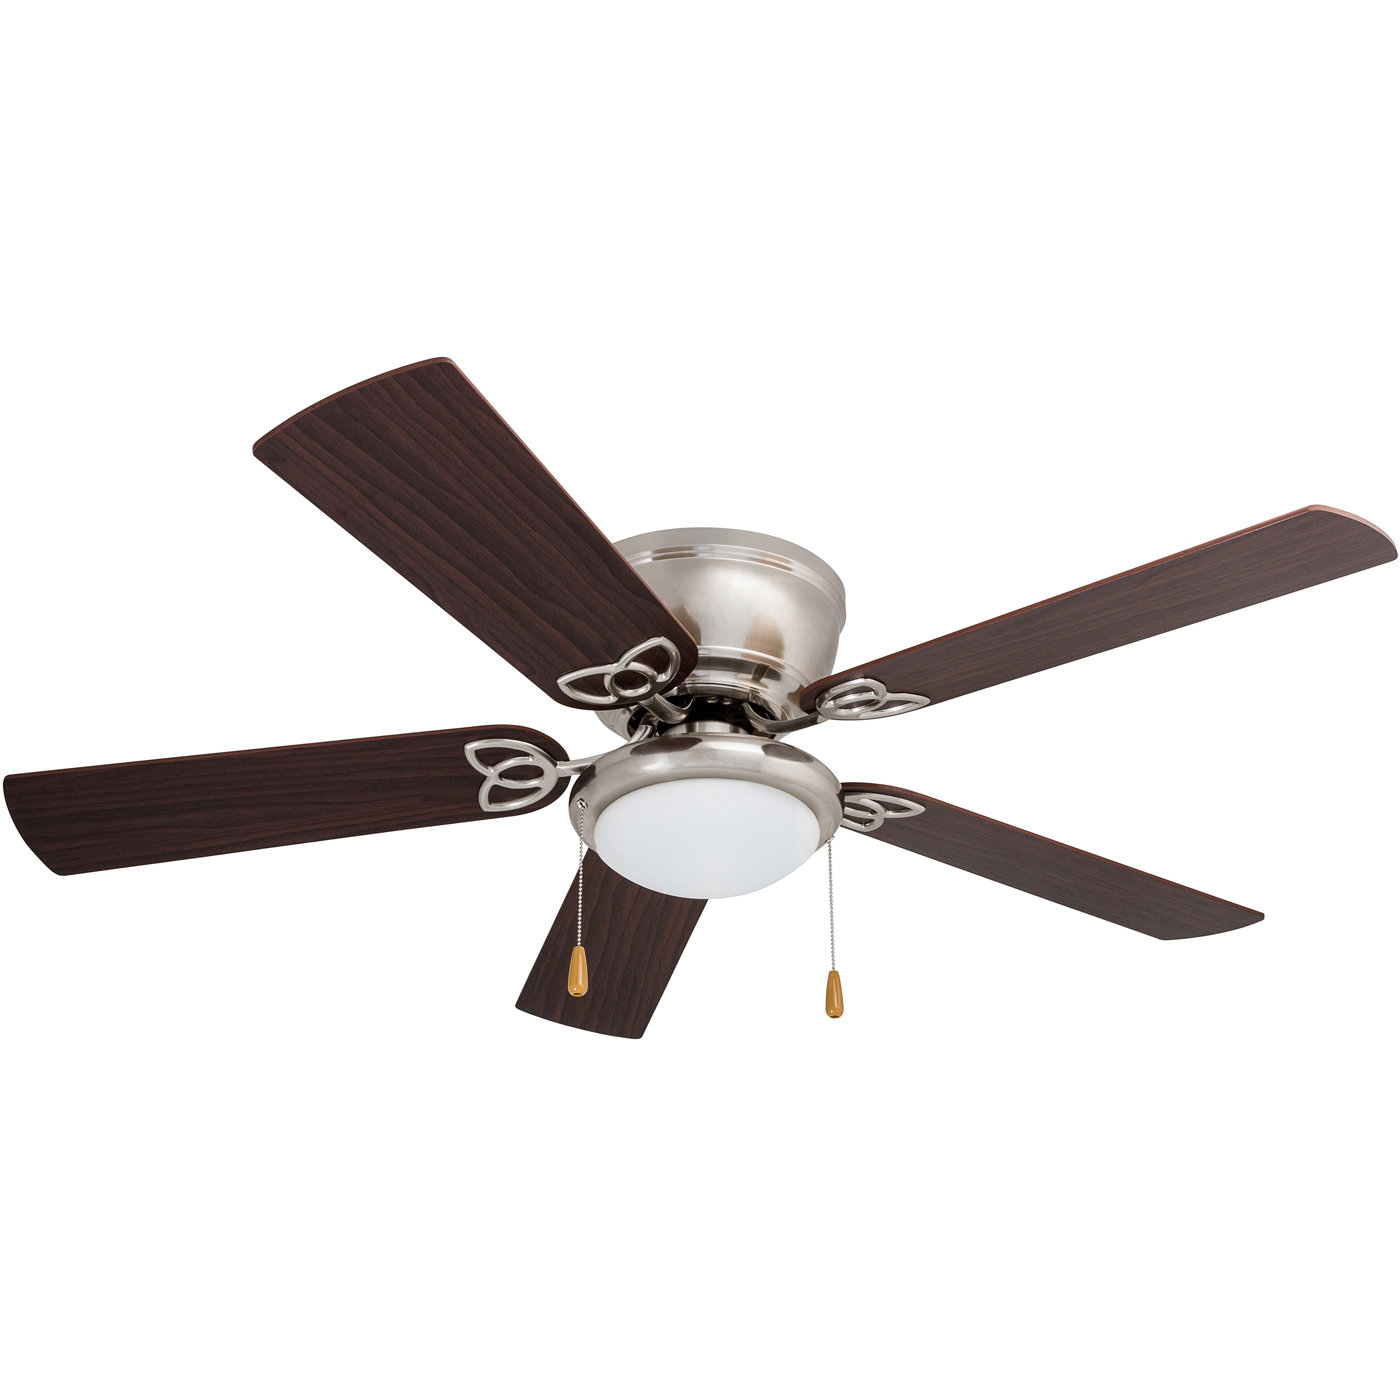 "52"" Mattias 5 Blade Ceiling Fan, Light Kit Included With Regard To Newest Conroy 5 Blade Ceiling Fans (View 11 of 20)"